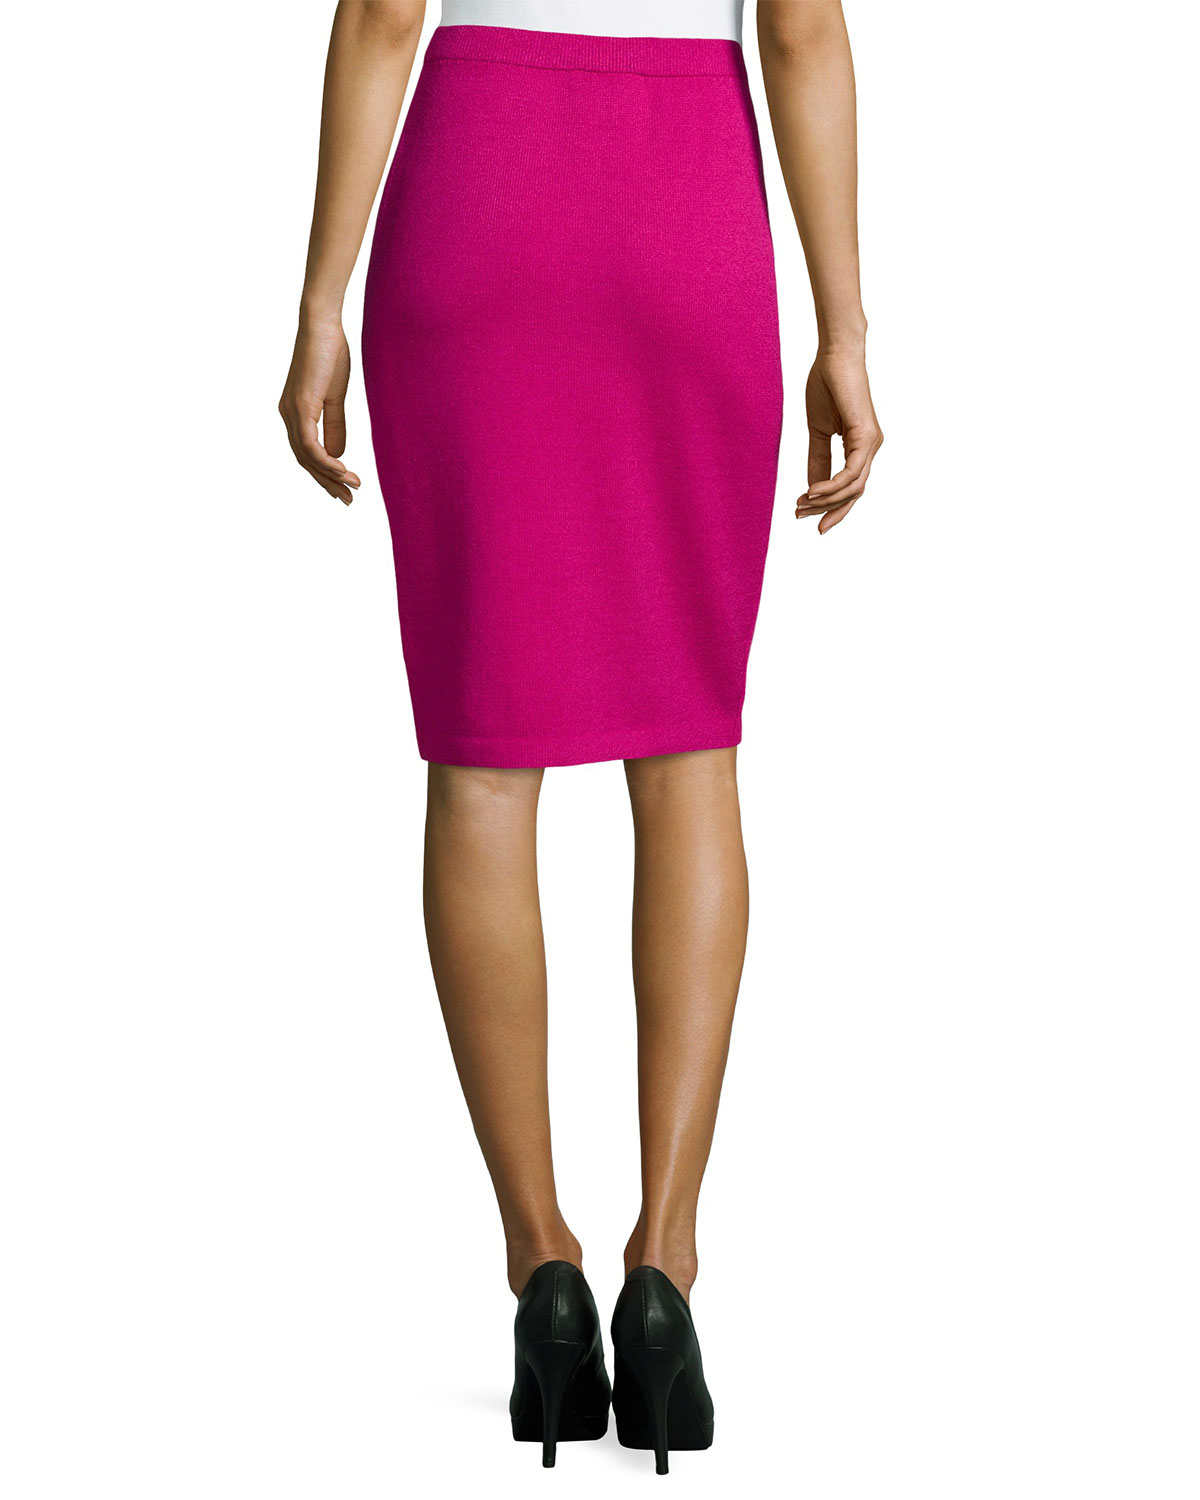 st pull on knit pencil skirt in pink lyst